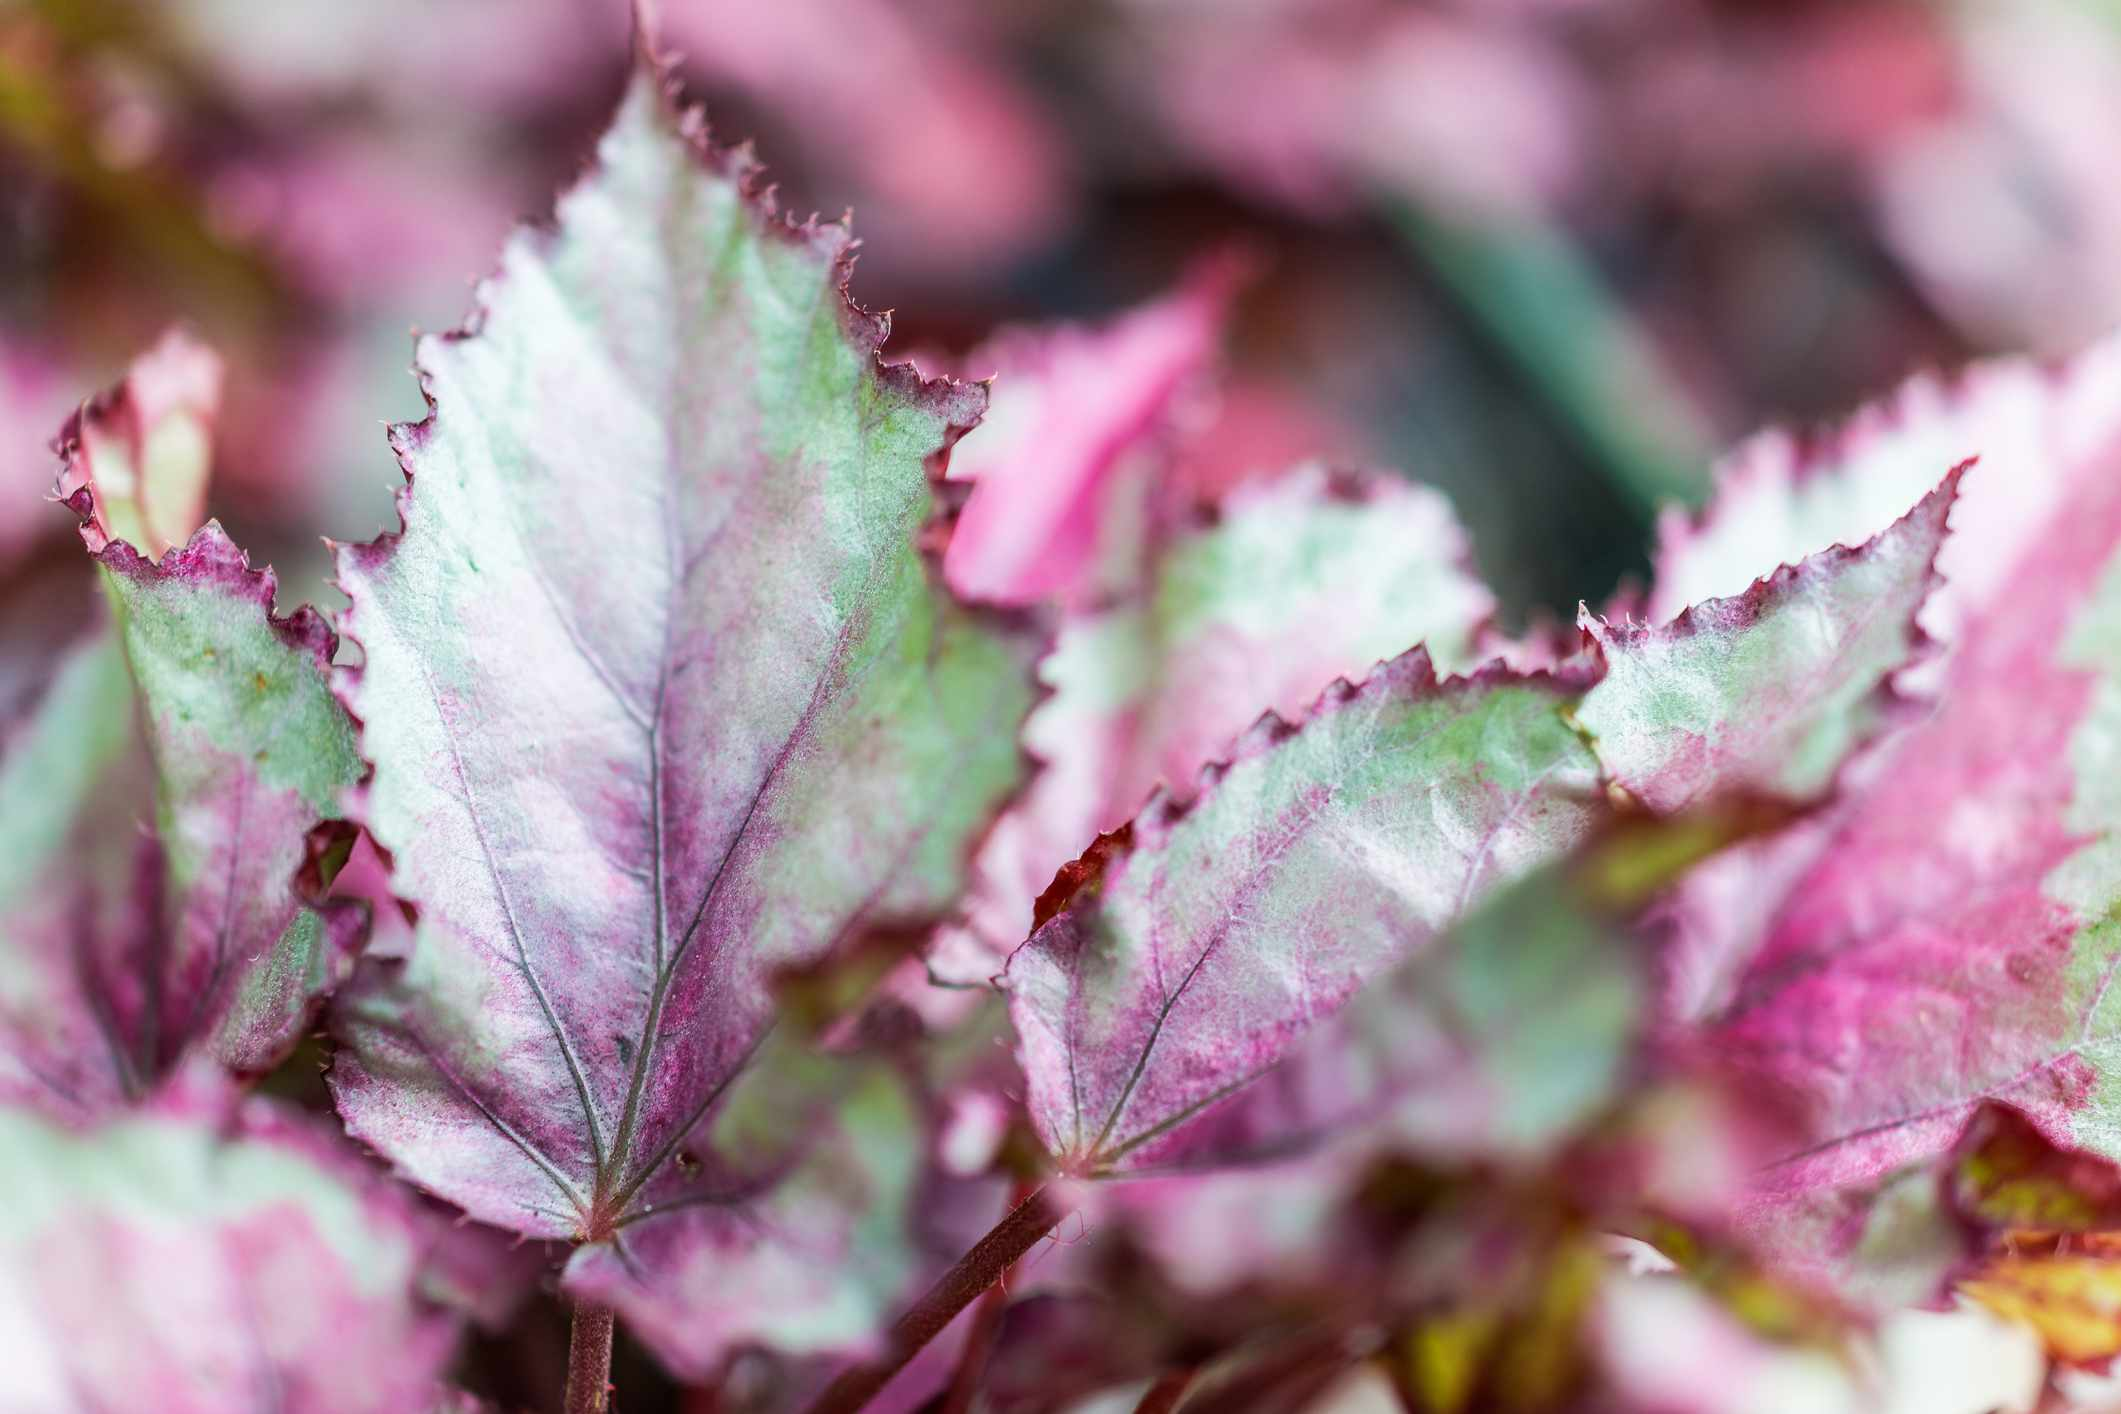 Macro closeup of green and purple rex begonia leaves